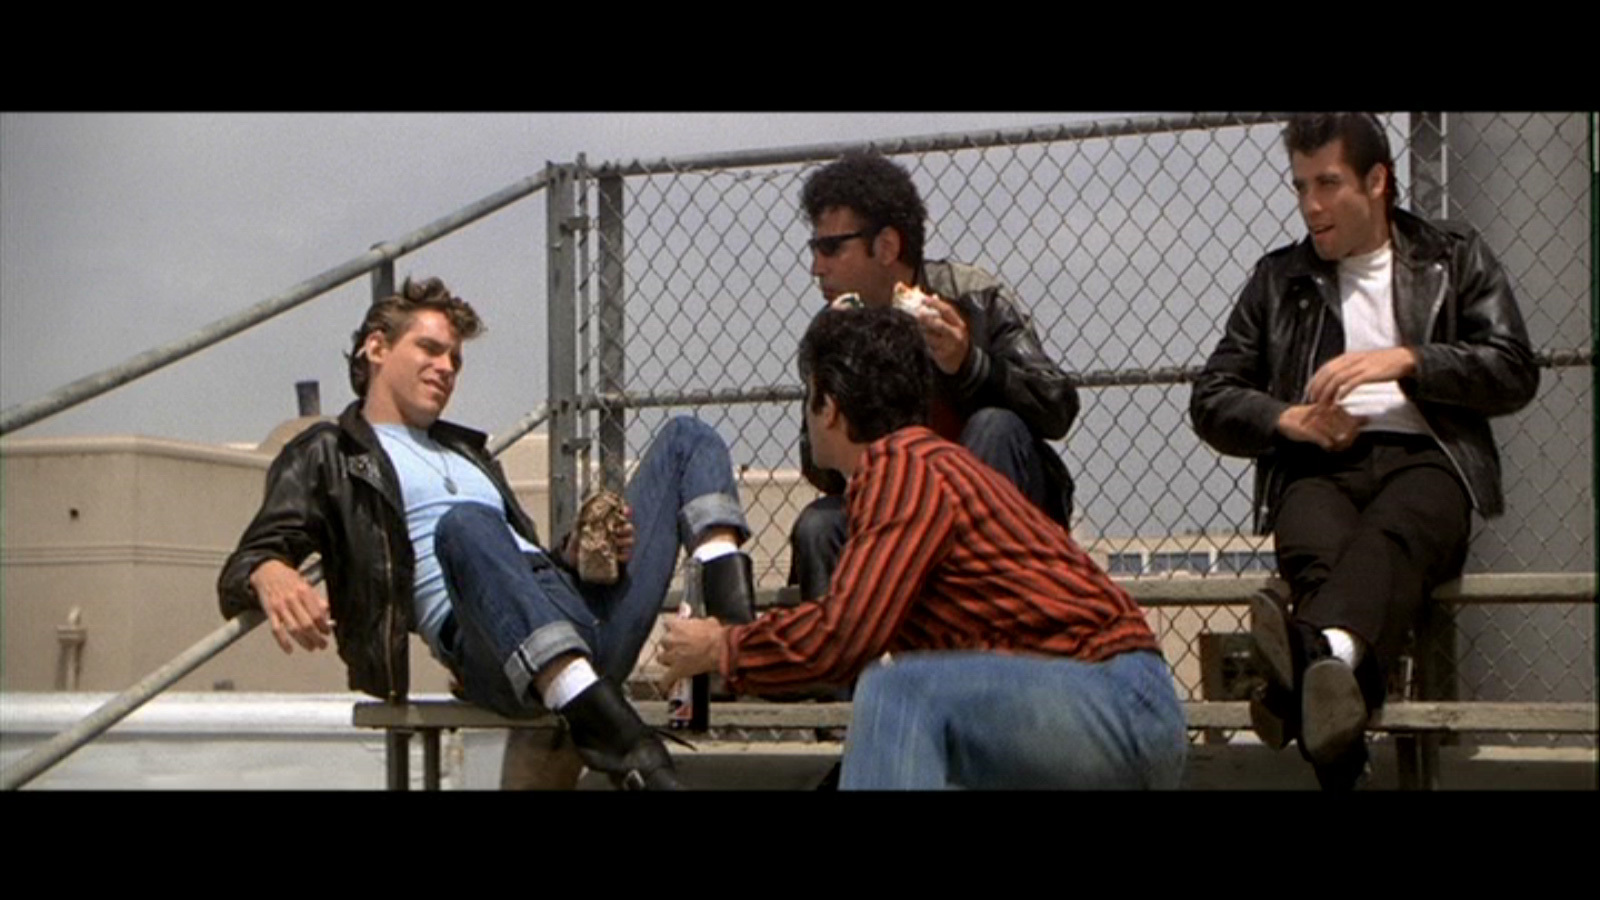 Grease Grease The Movie Image 2984284 Fanpop